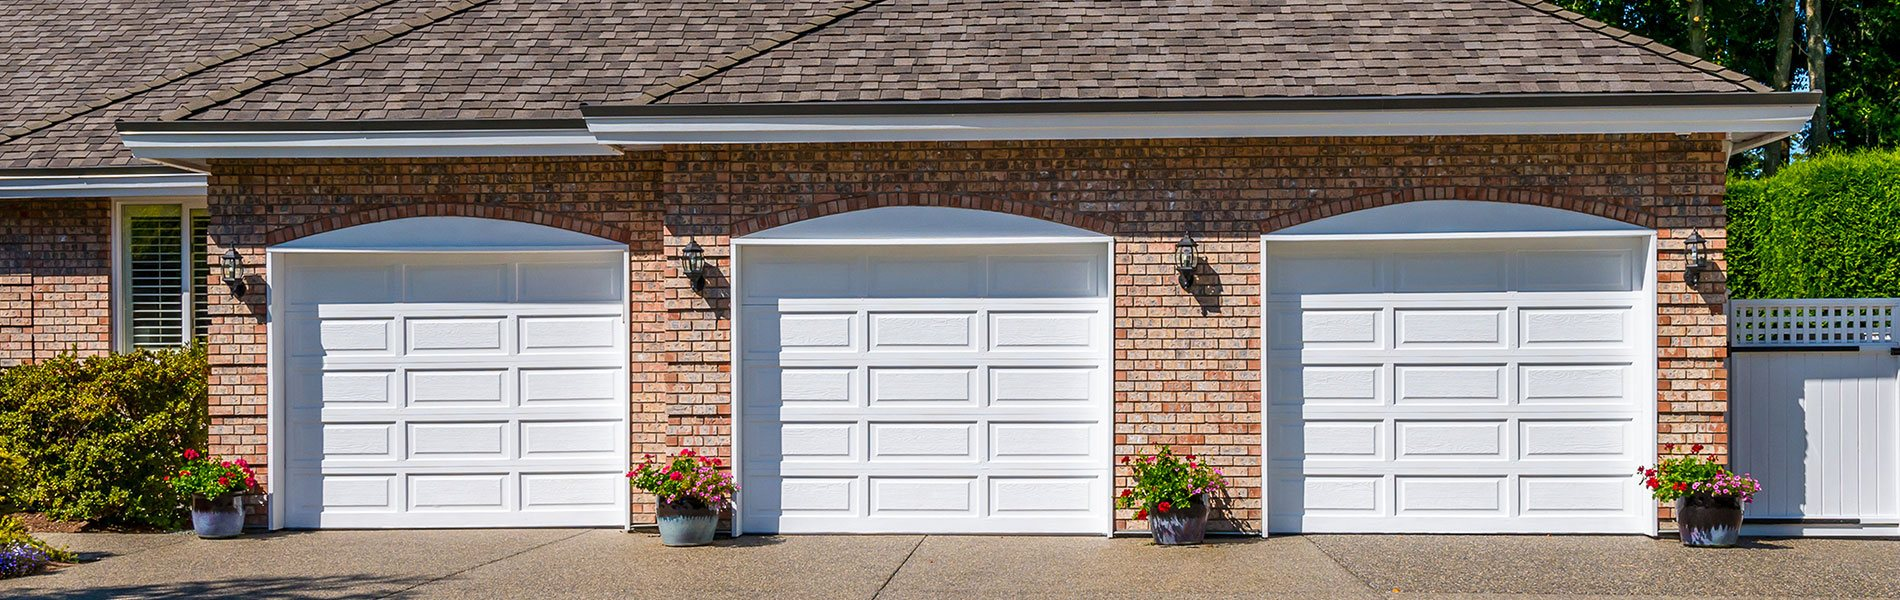 Galaxy Garage Door Repair Service, Ray, MI 586-574-5128